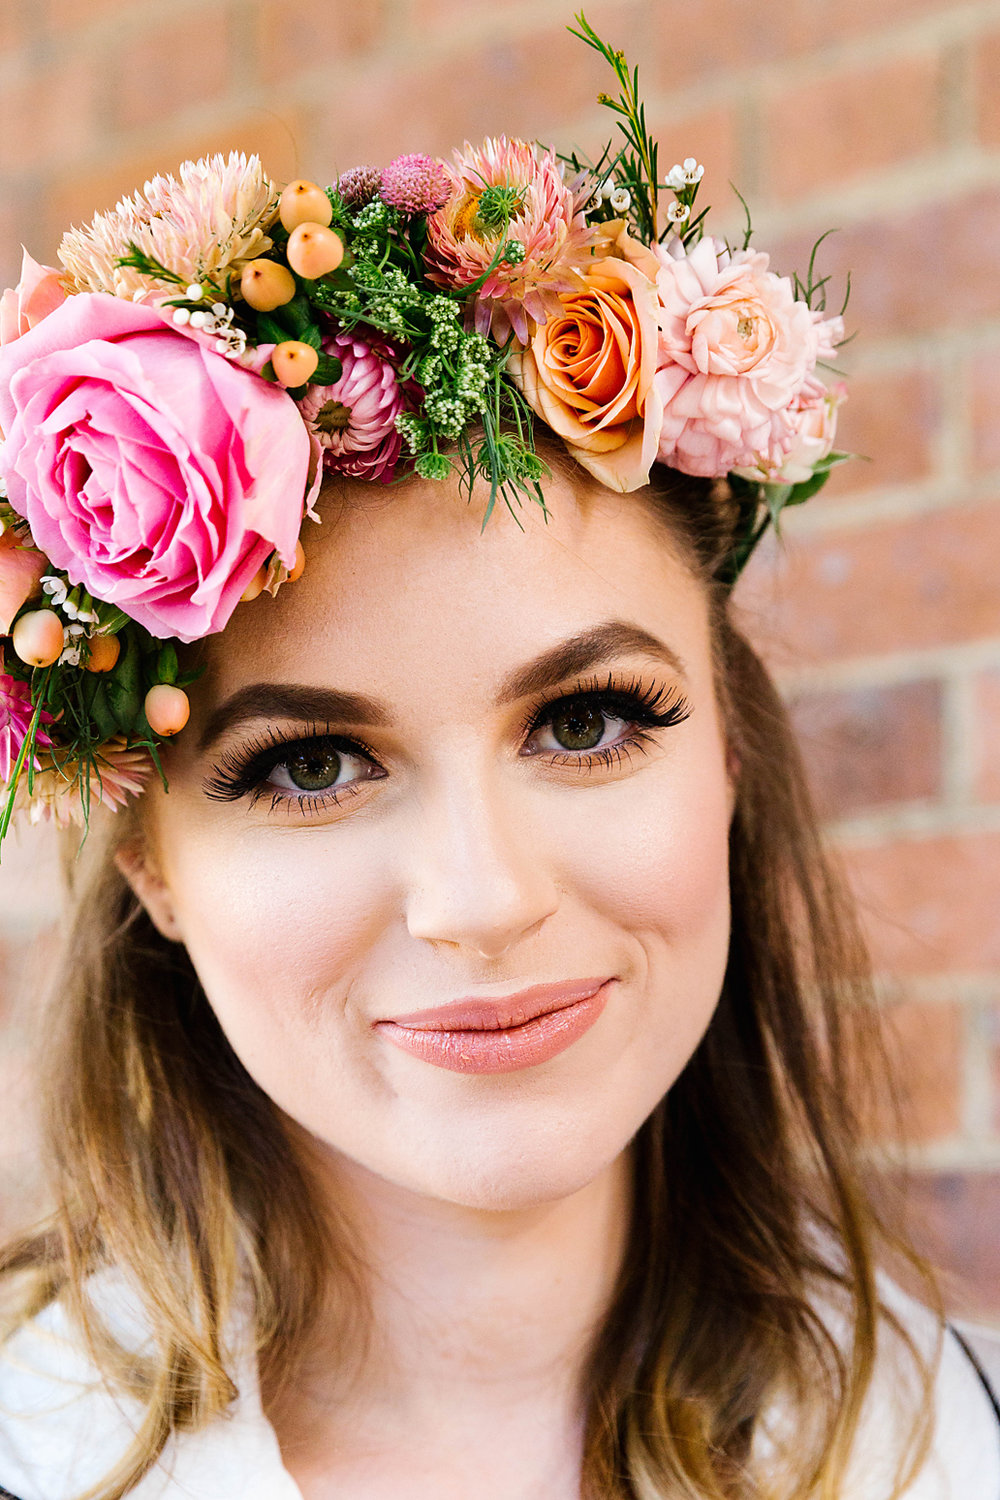 Flowercrown by Bumble & Bloom. Photography by Poppy & Sage Photography.